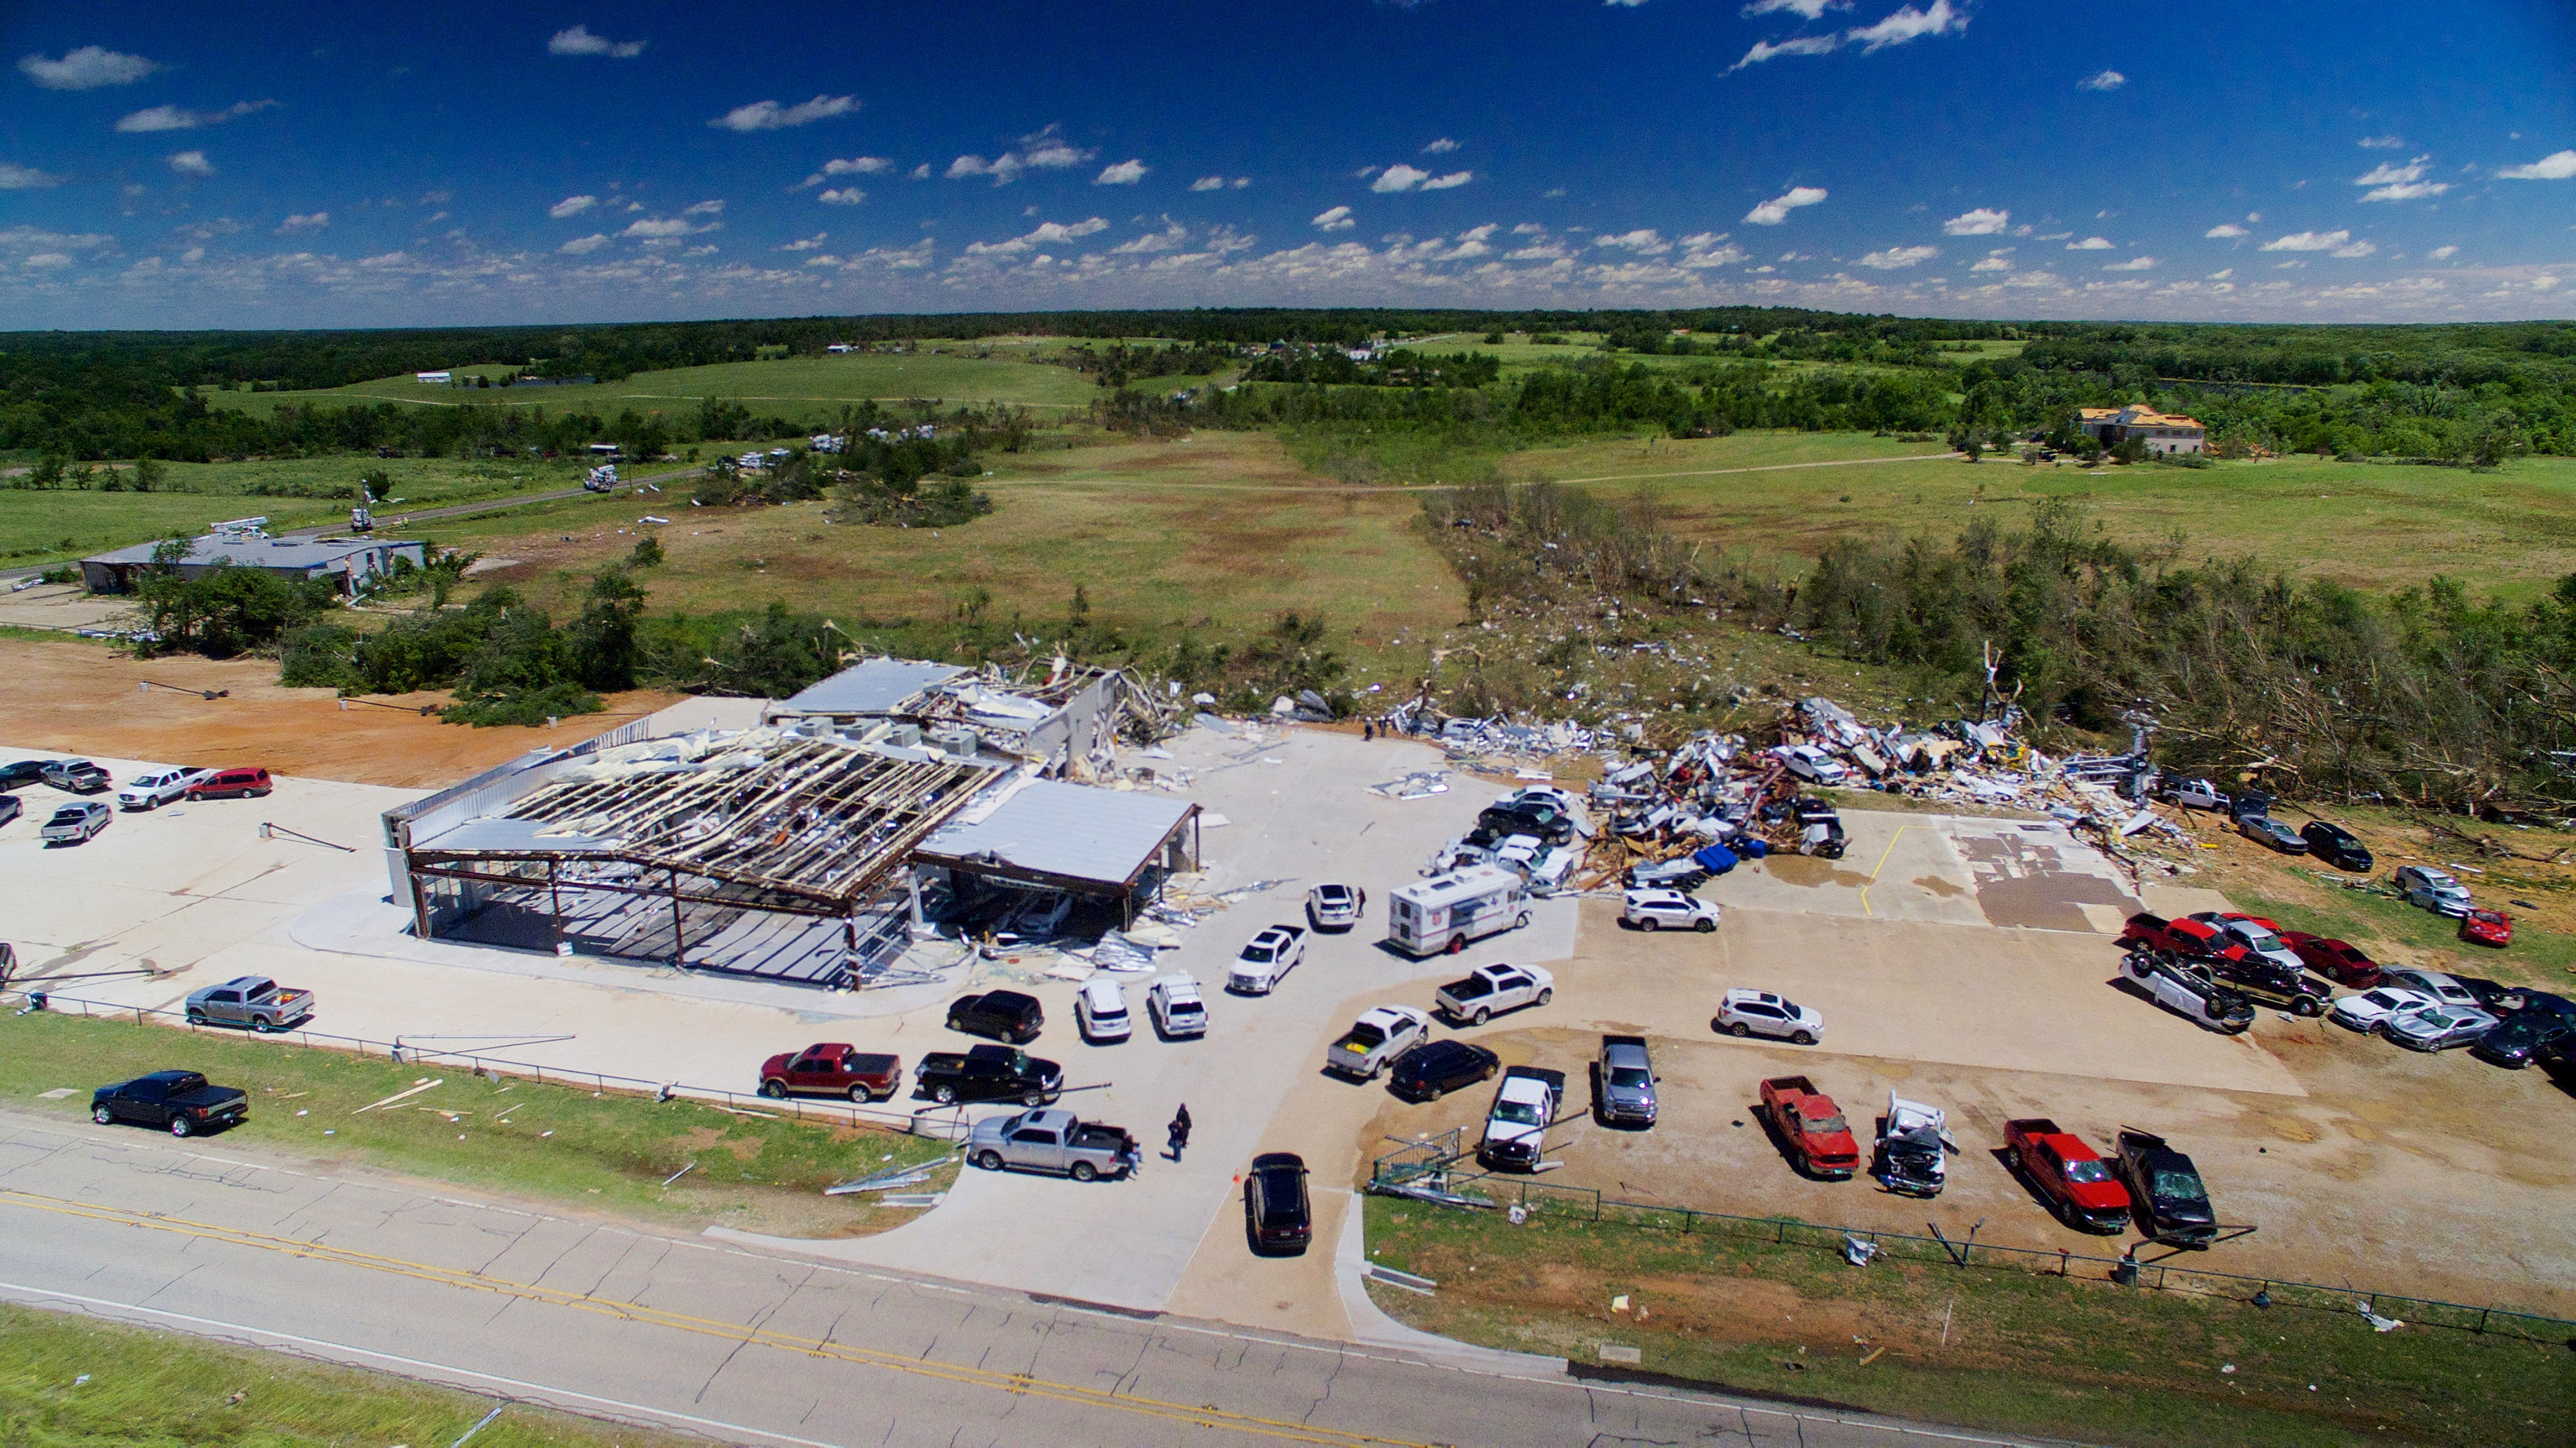 A business damaged by tornadoes is seen from an unmanned aerial vehicle in Canton, Texas on April 30, 2017. (REUTERS/Brandon Wade)